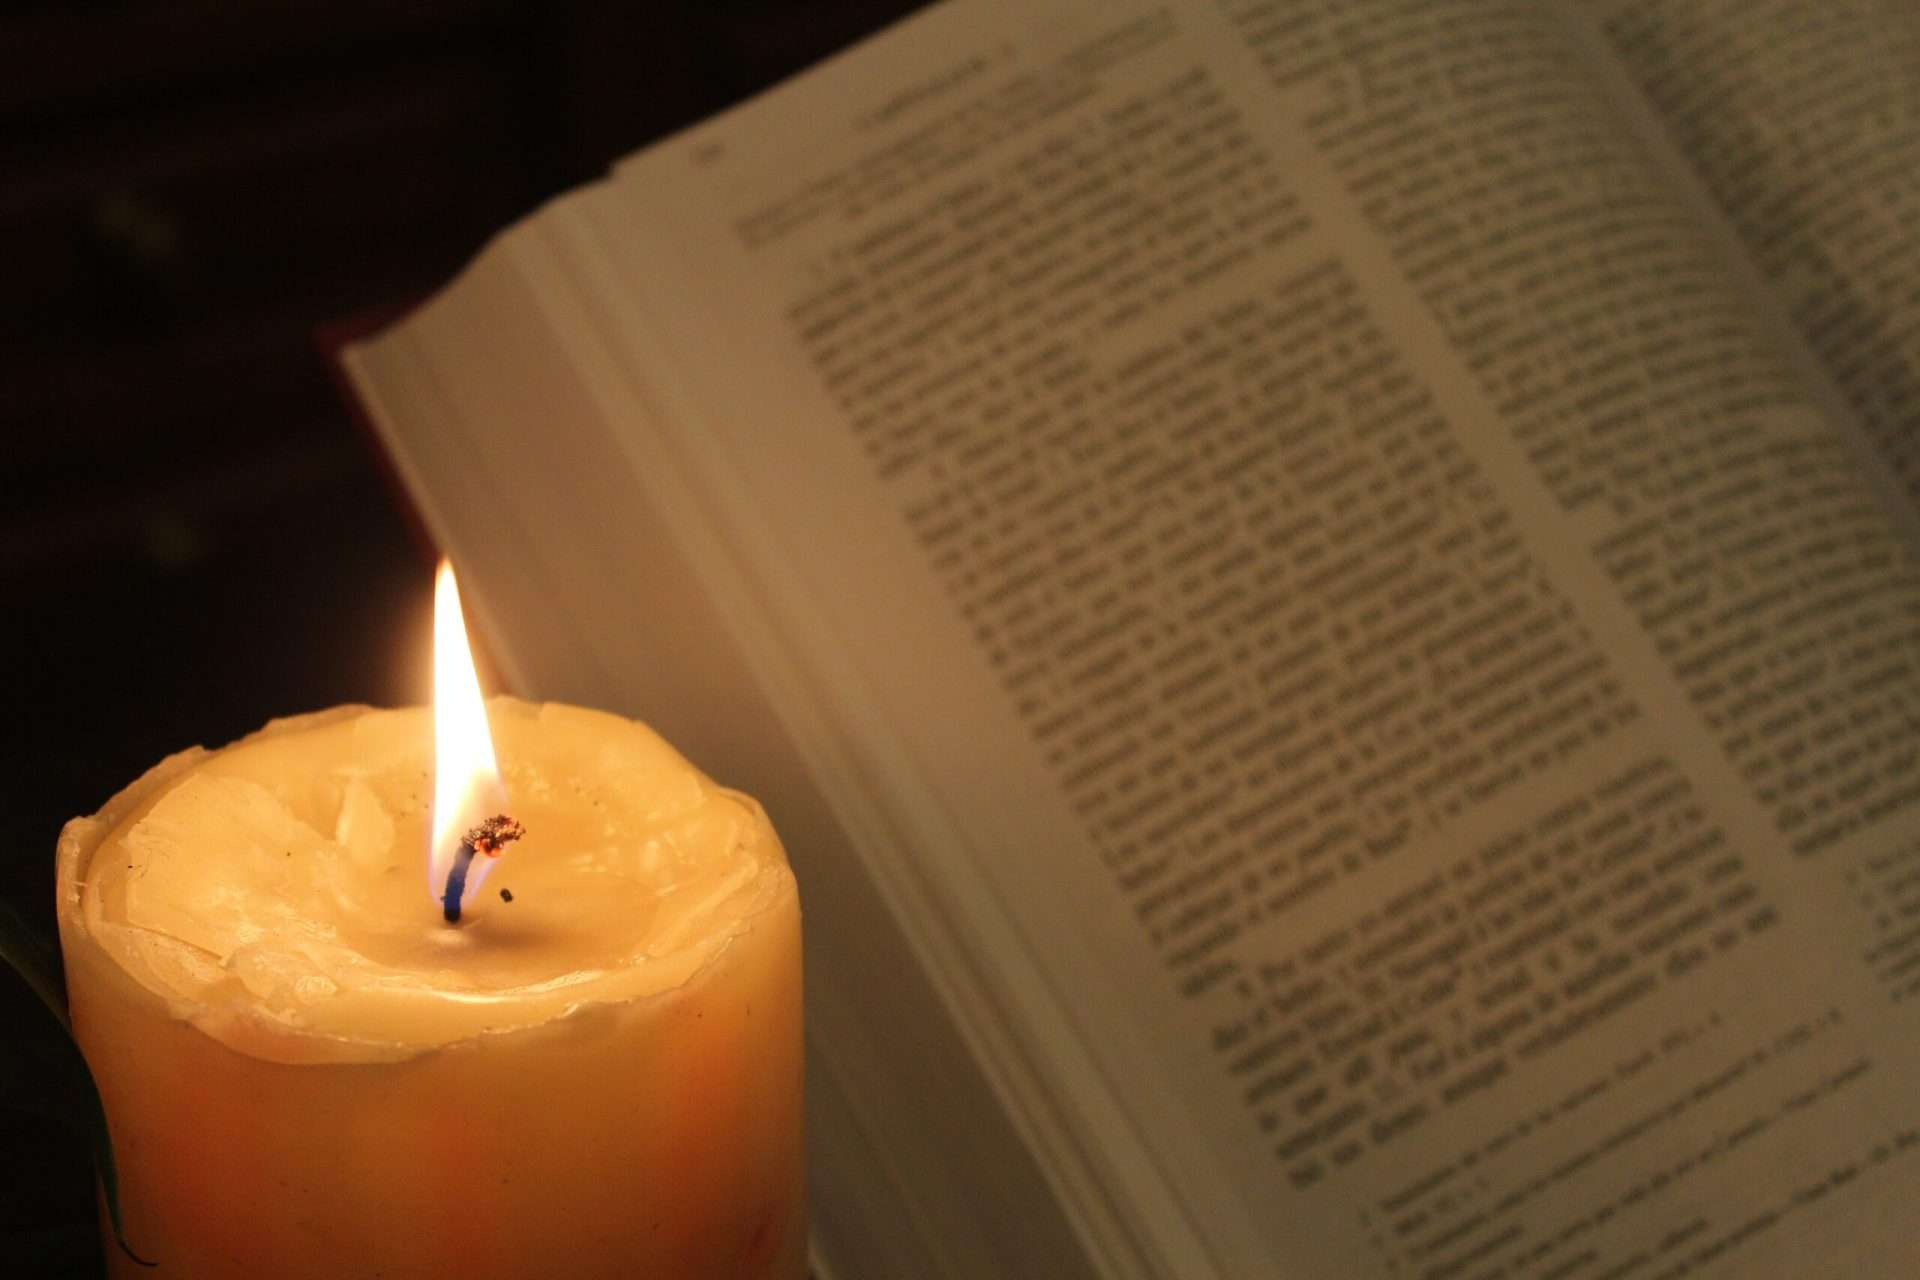 Can I receive a plenary indulgence for reading the Bible?